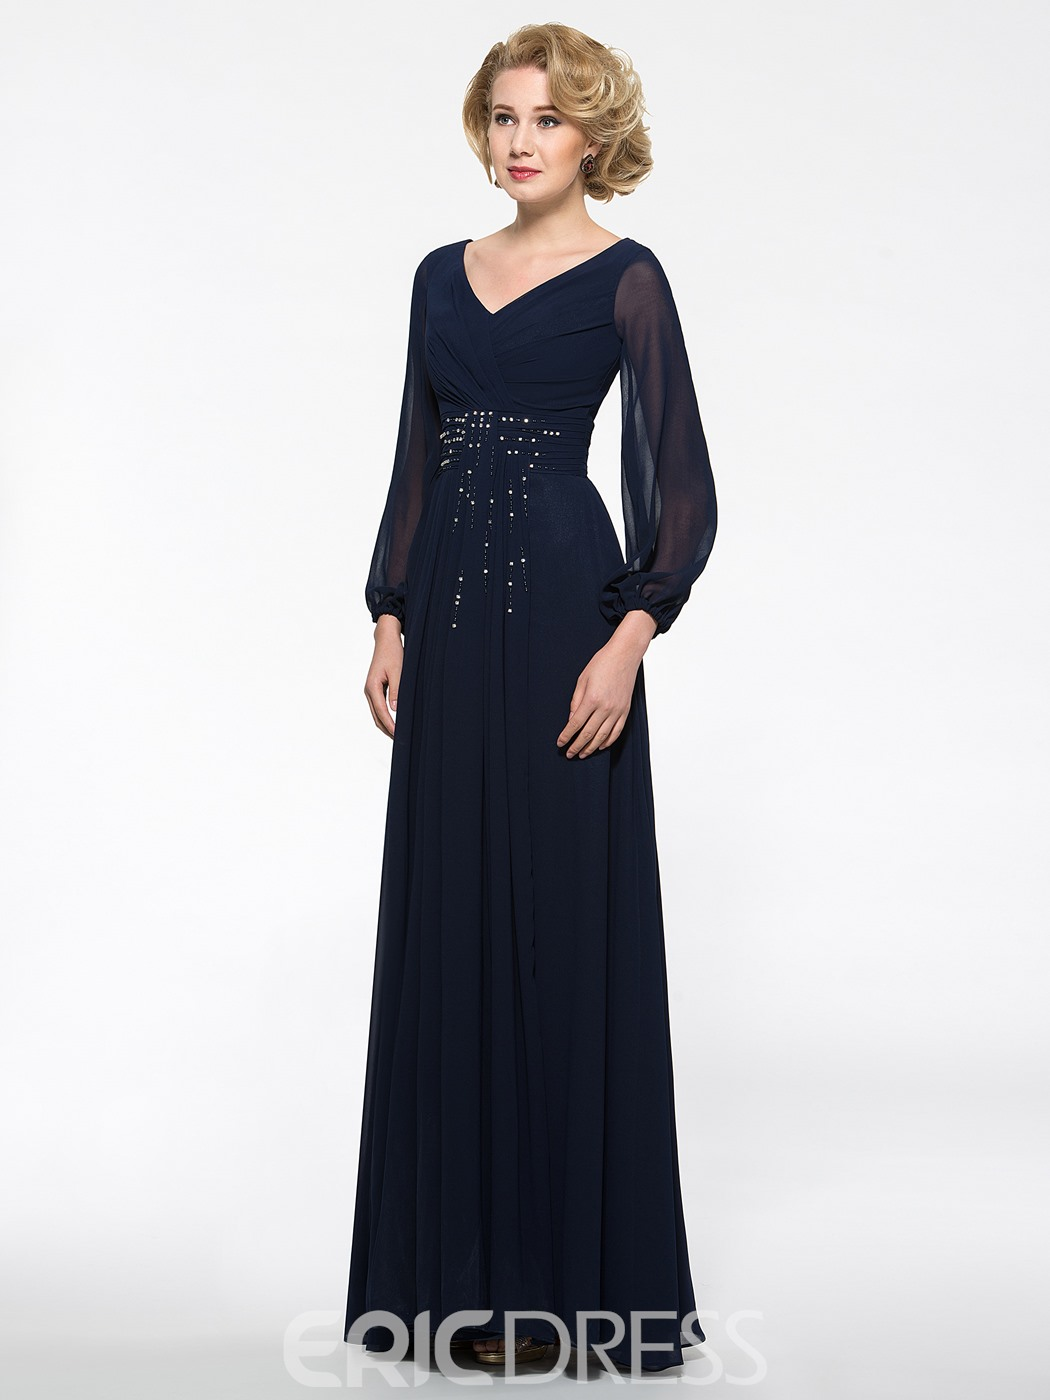 Ericdress Beautiful V Neck Long Sleeves Mother of the Bride Dress